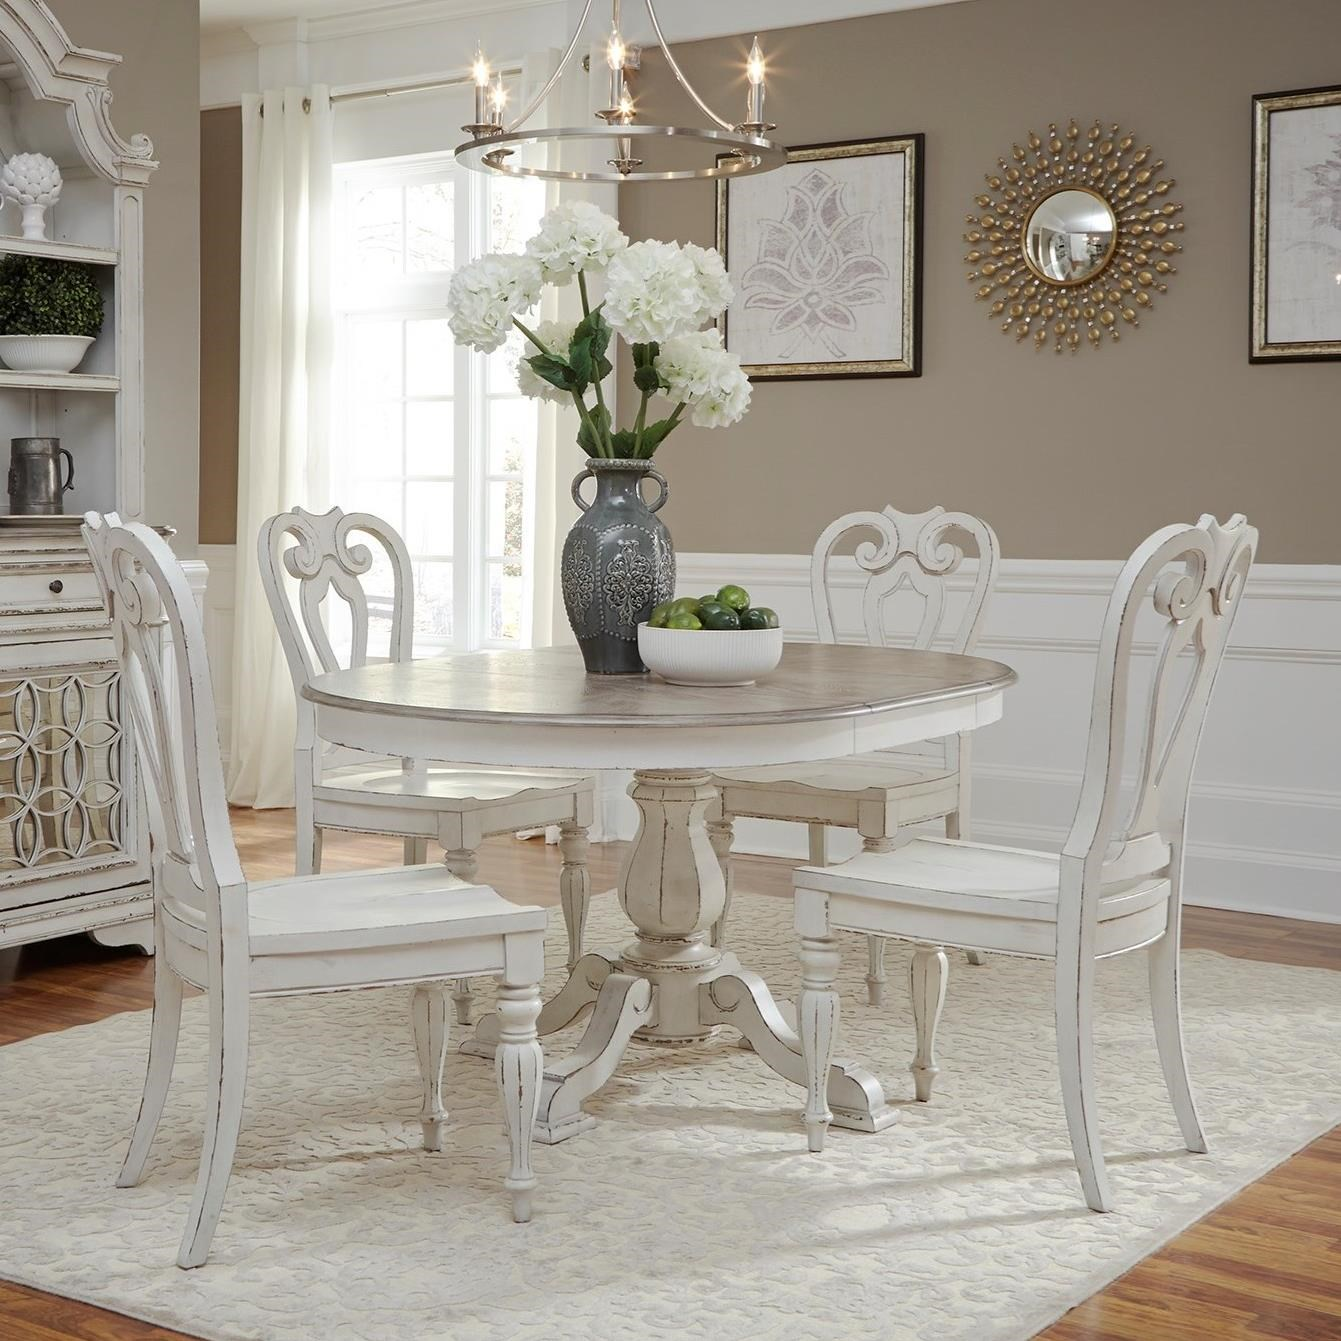 Magnolia Manor Dining 5 Piece Chair & Table Set by Liberty Furniture at Johnny Janosik